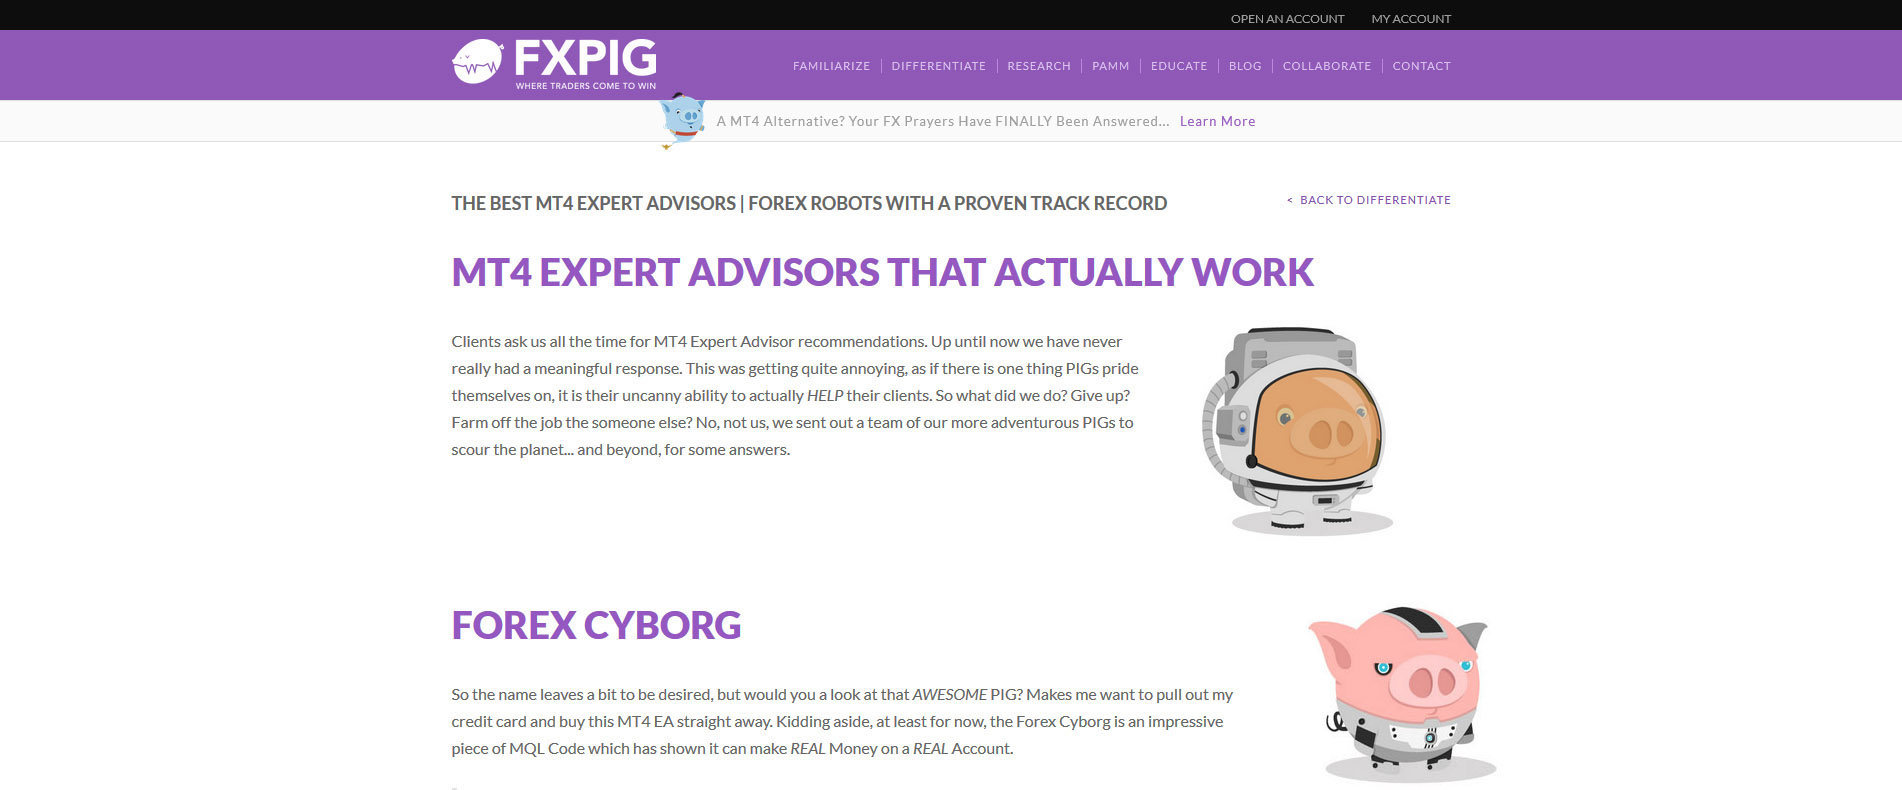 Forex Cyborg Recommended by FXPIG